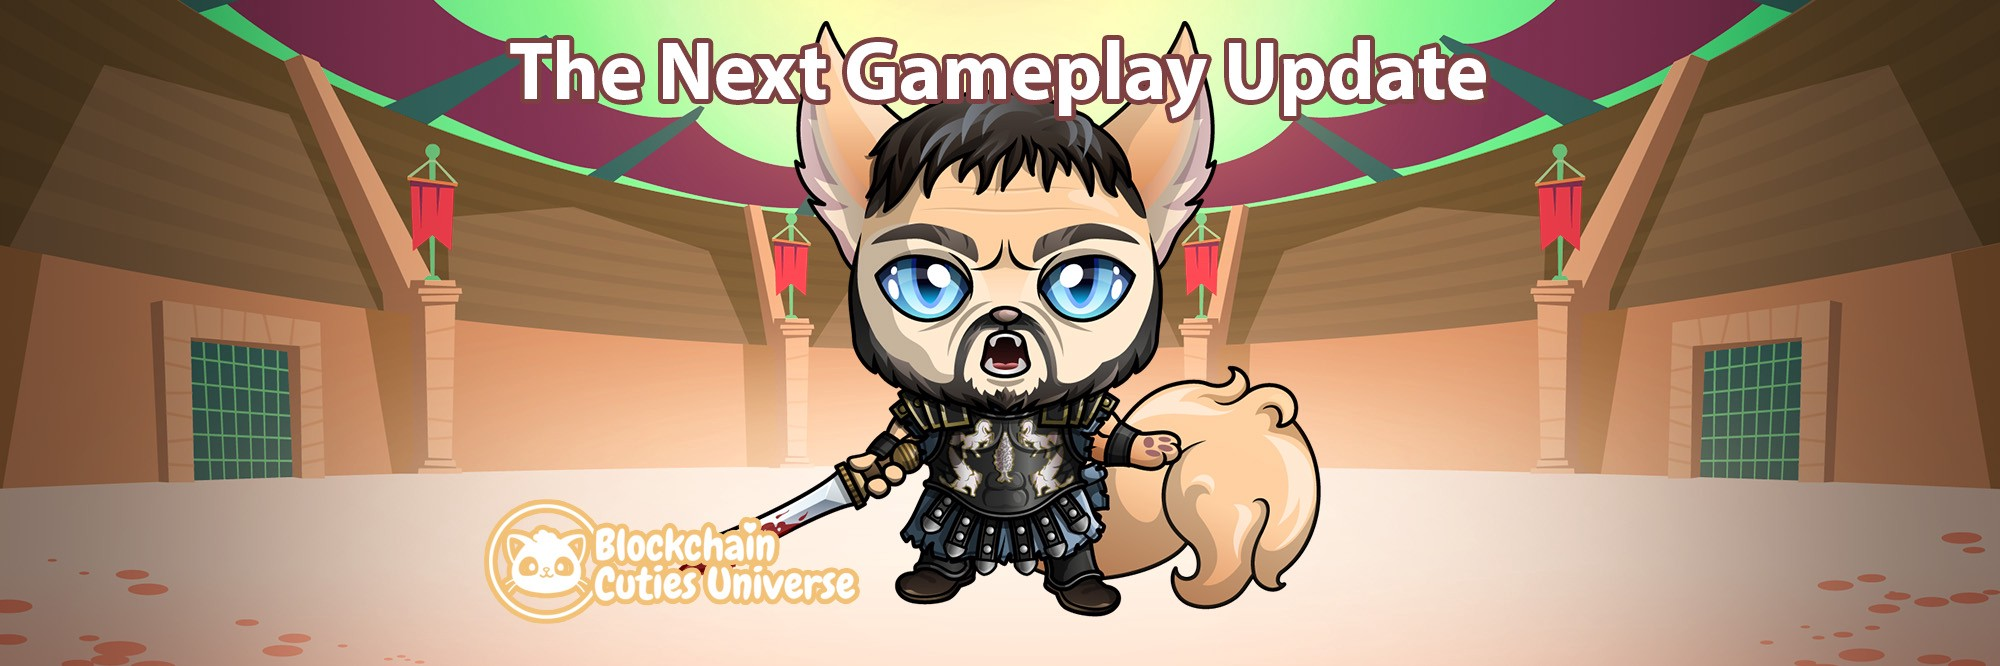 [Blockchain Cuties Universe] Gameplay Update: New Cutie Fights Coming Soon